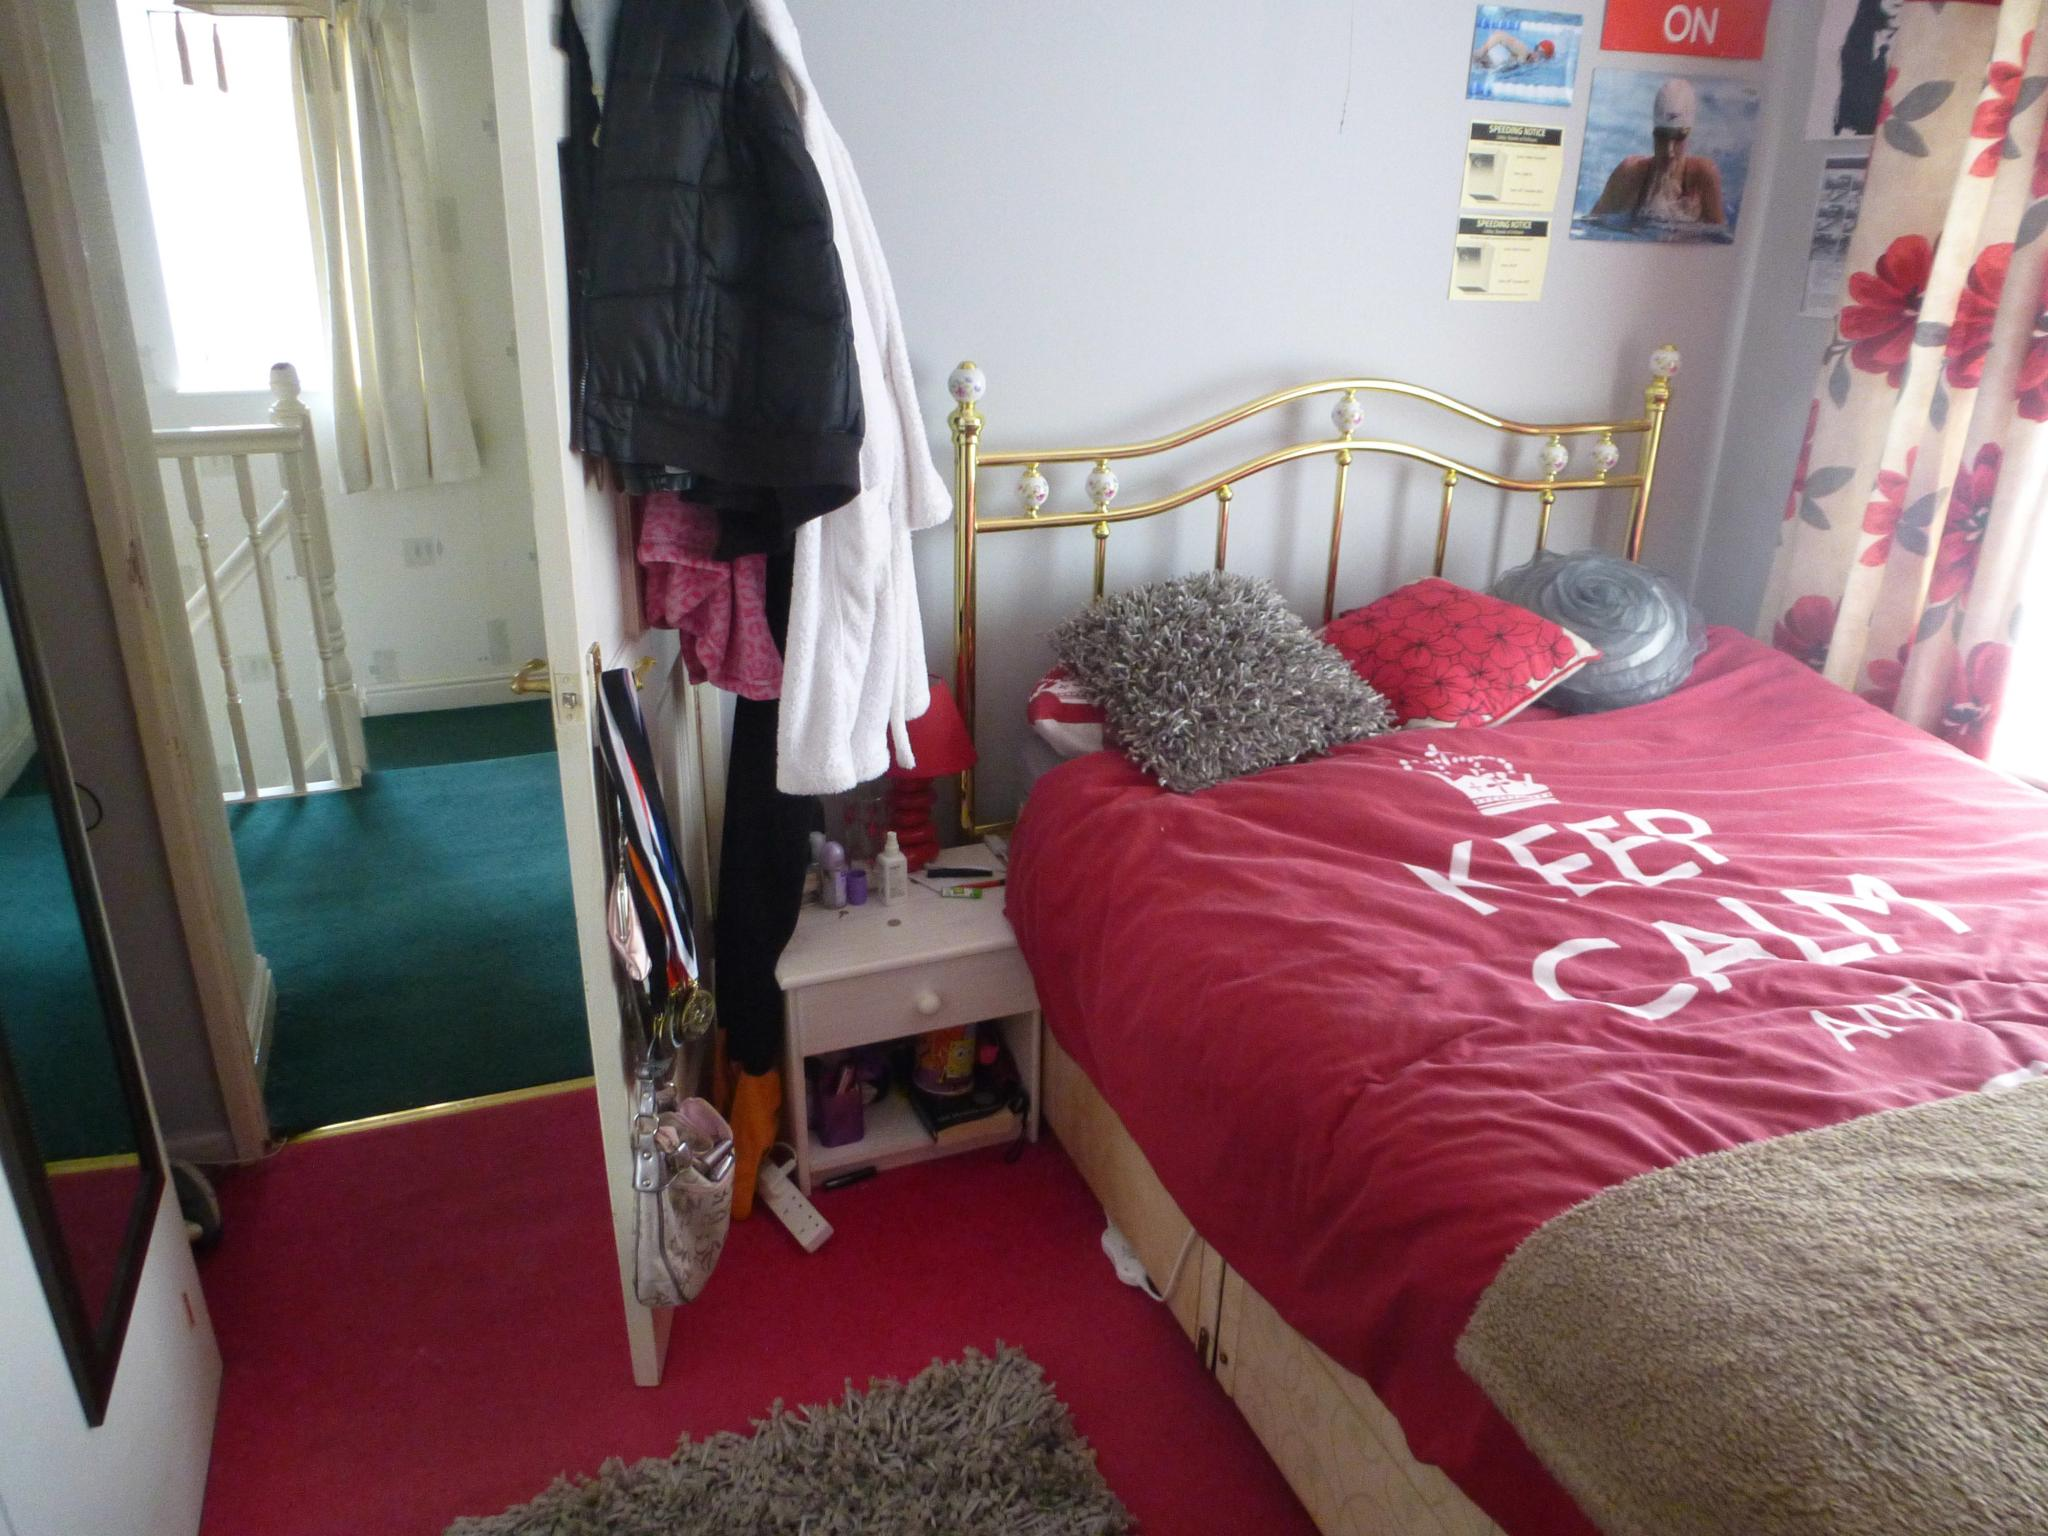 Image 1 of 2 of BEDROOM 3, on Accommodation Comprising for